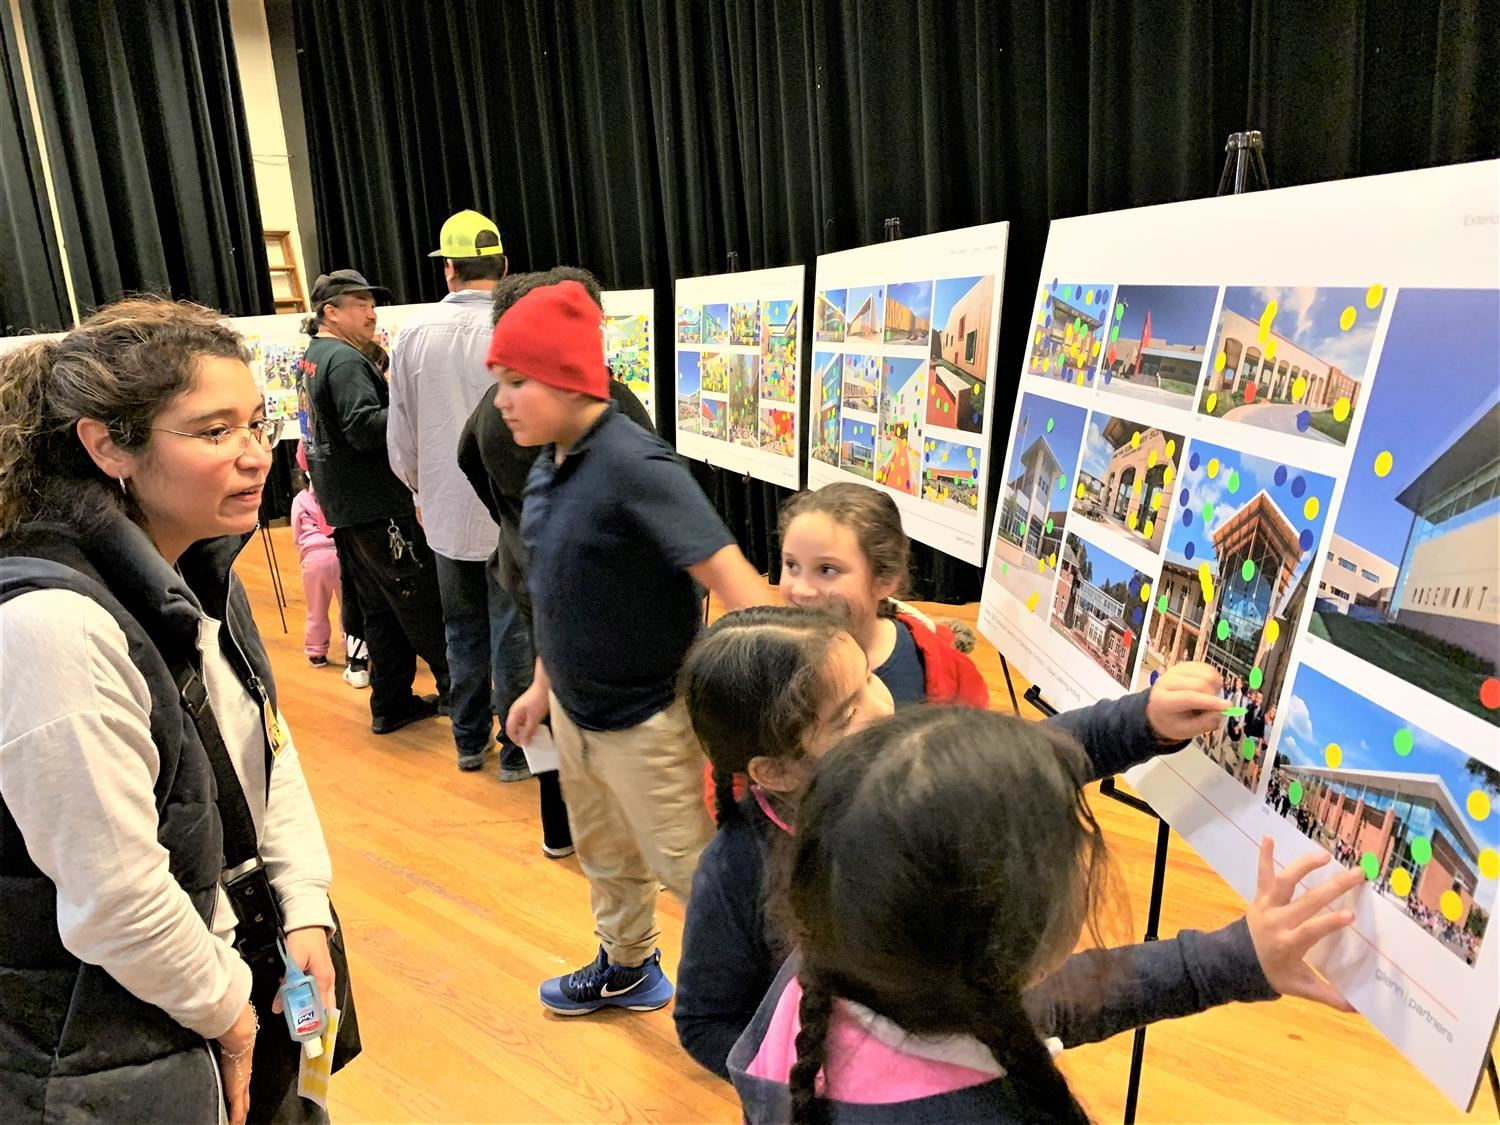 Nathaniel Hawthorne community shares ideas about new school features